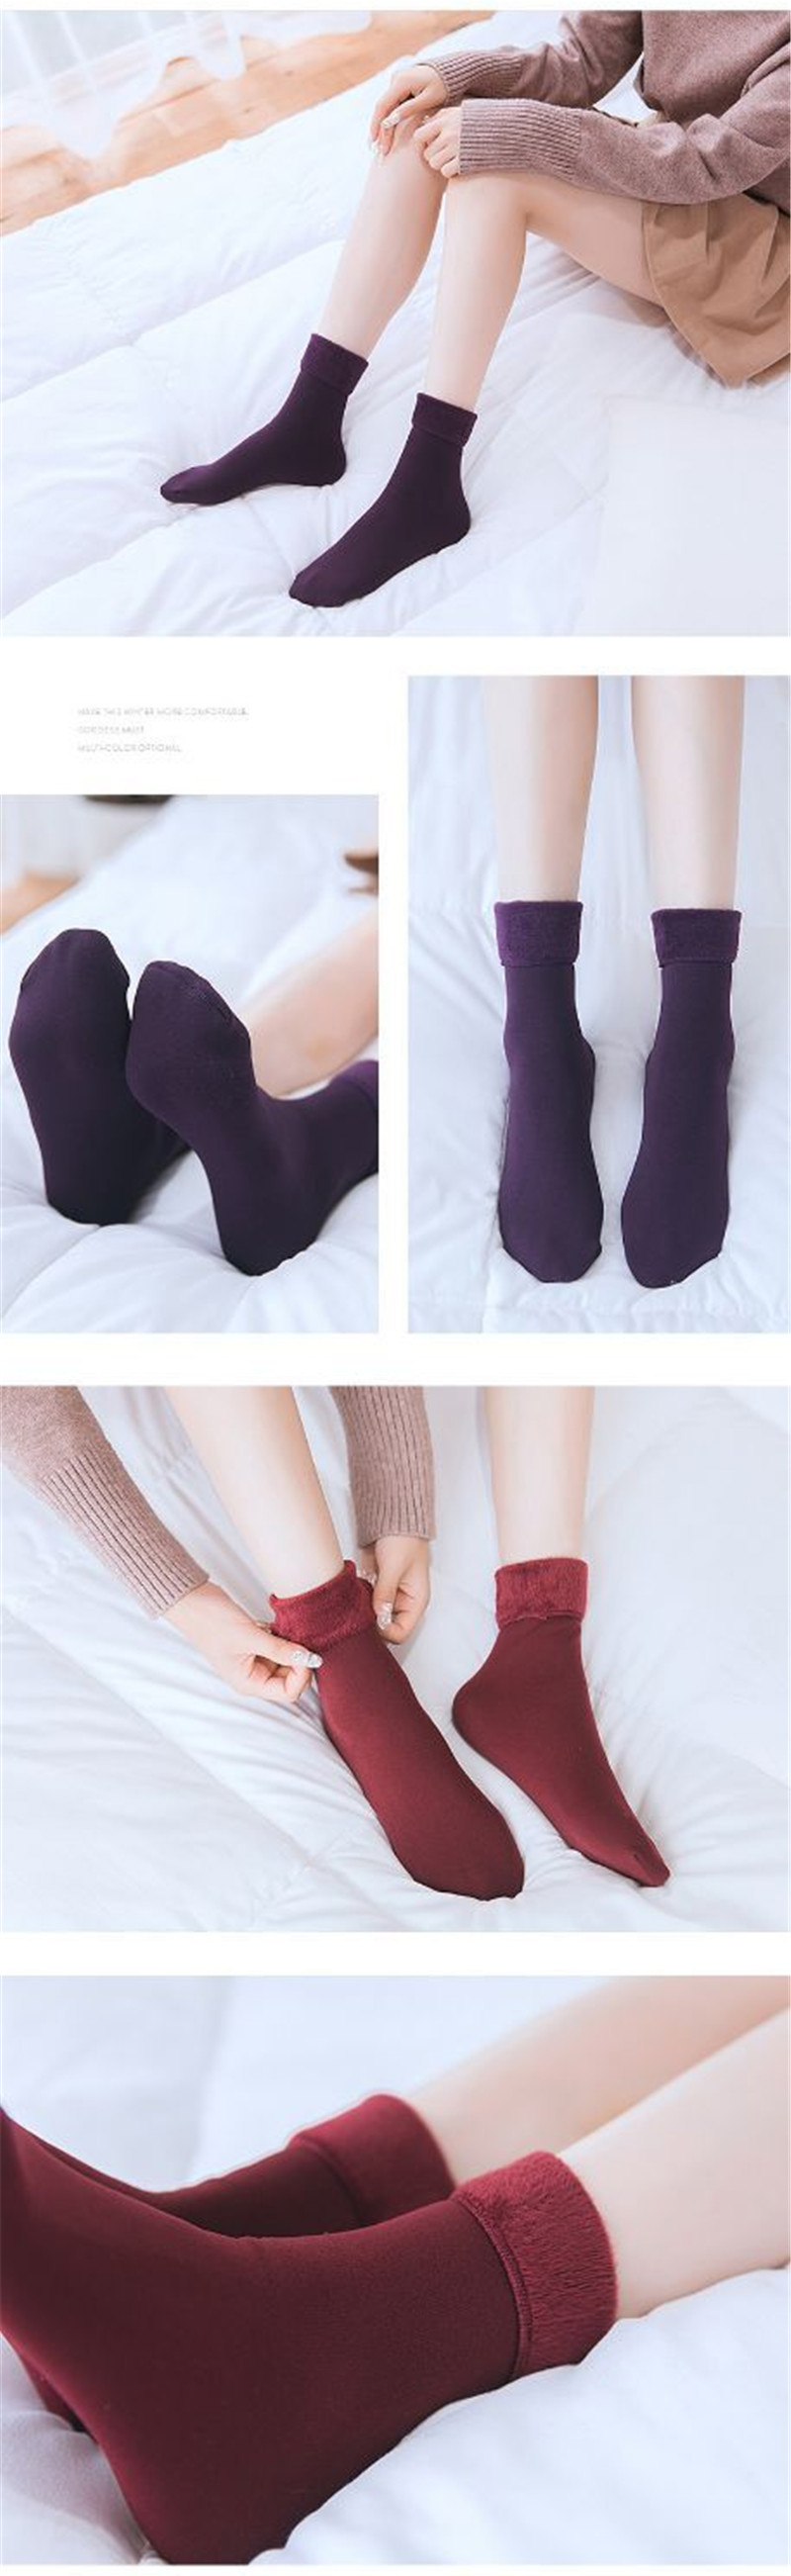 H9db9a9e75c044ee9a2e605c3175849ddy - Casual Socks For Women Nylon Plus Velvet Thickening Socks Solid Breathable Elastic Force Lady's Mid Women Warm Socks Winter